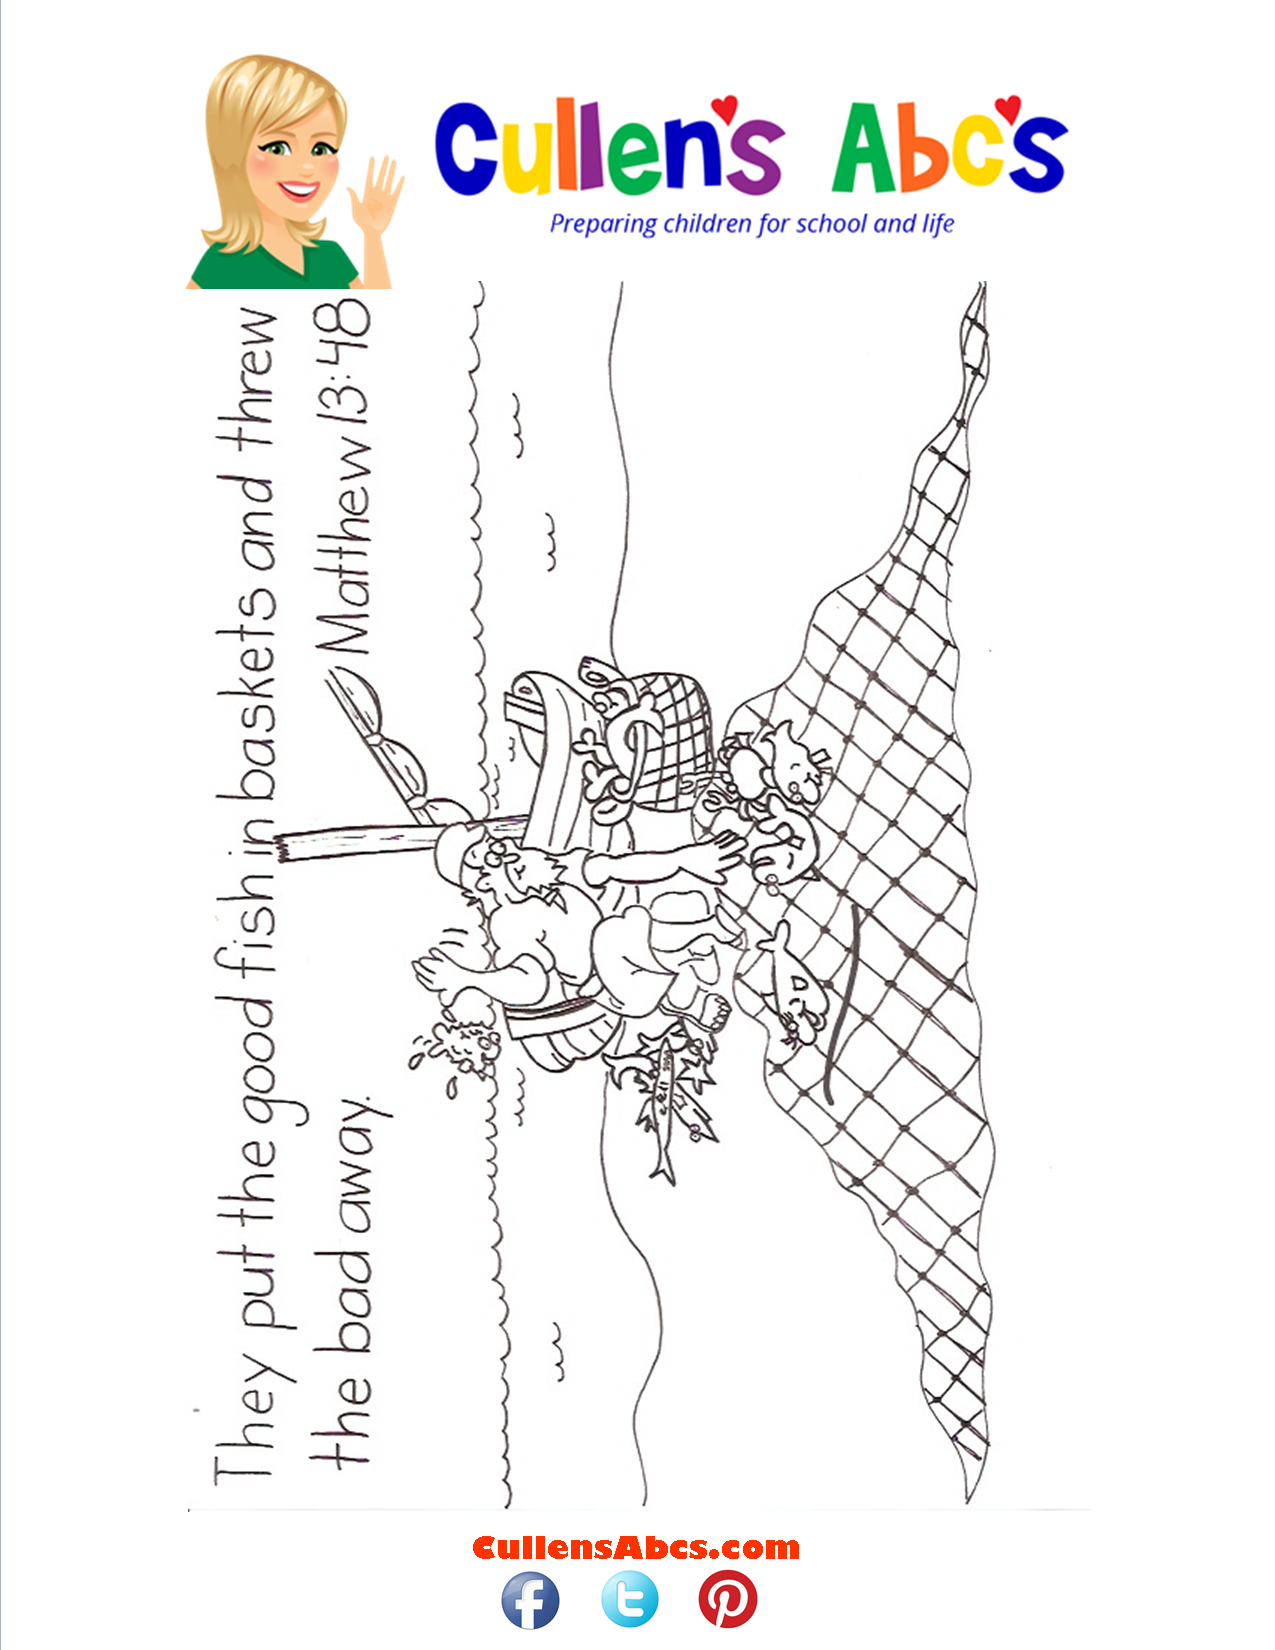 Bible Key Point Coloring Page-They put the good fish in baskets...